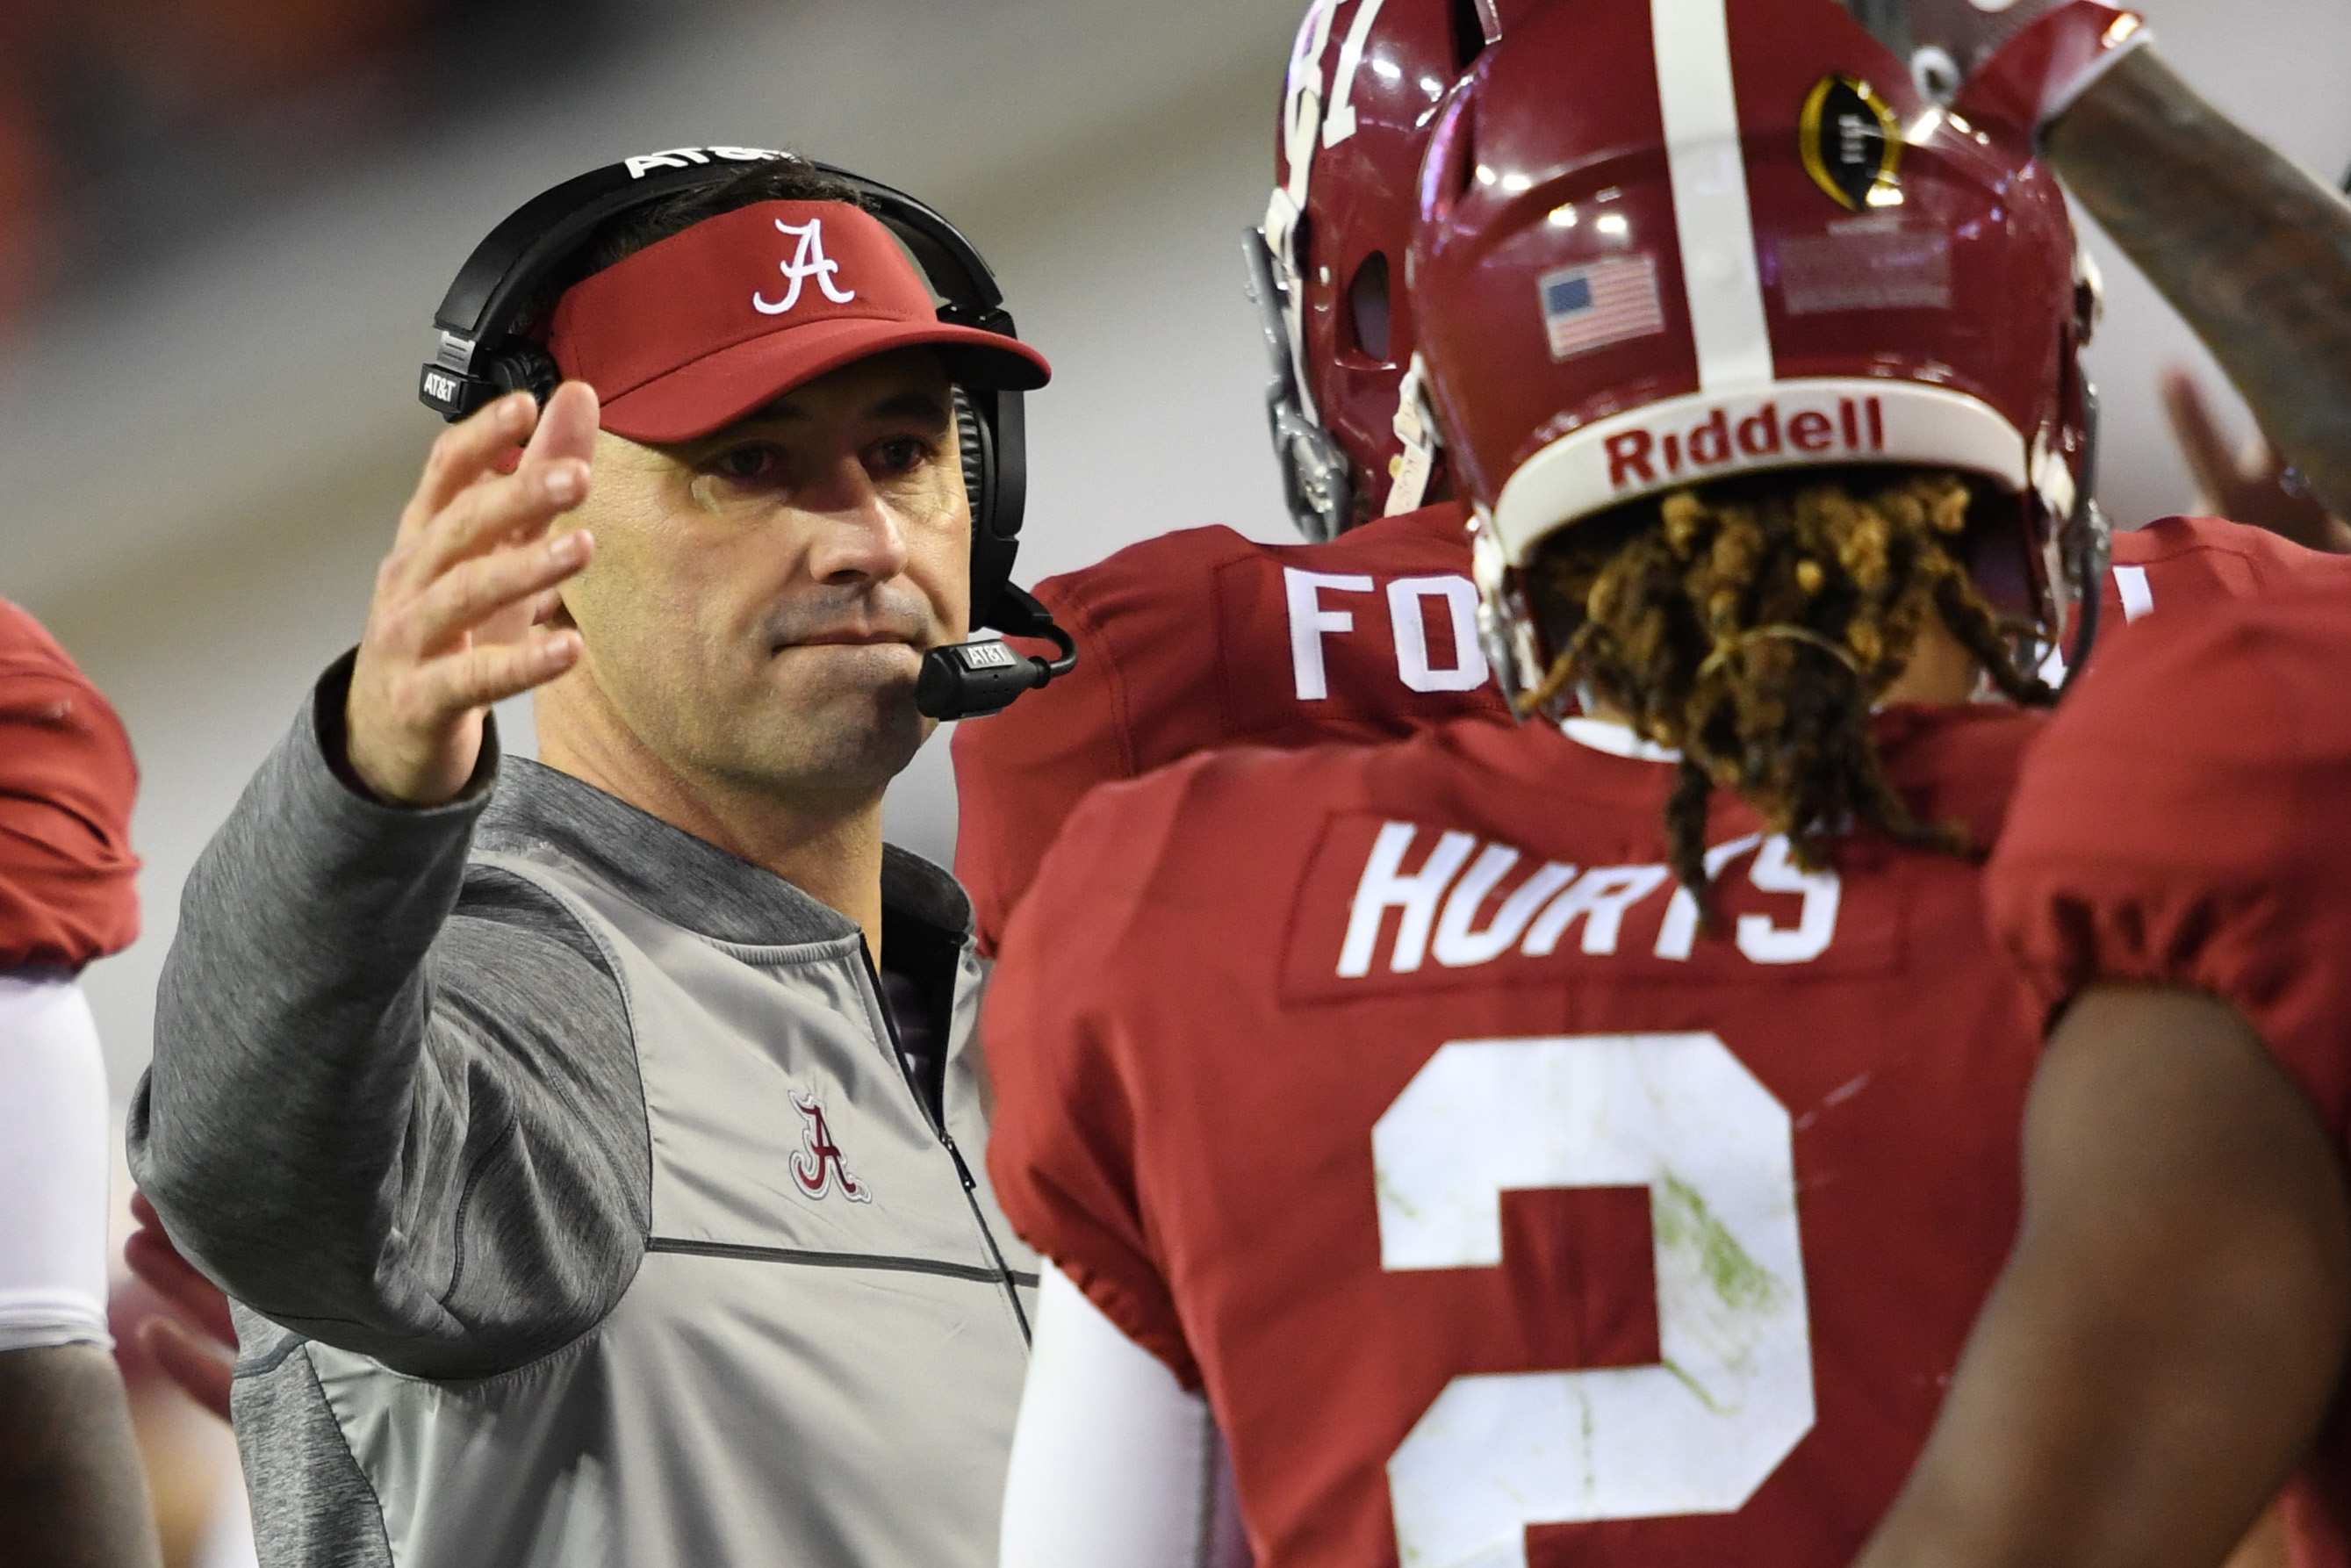 Alabama S Loss Shows Pitfall Of Cfp And Why Expanding To 8 Would